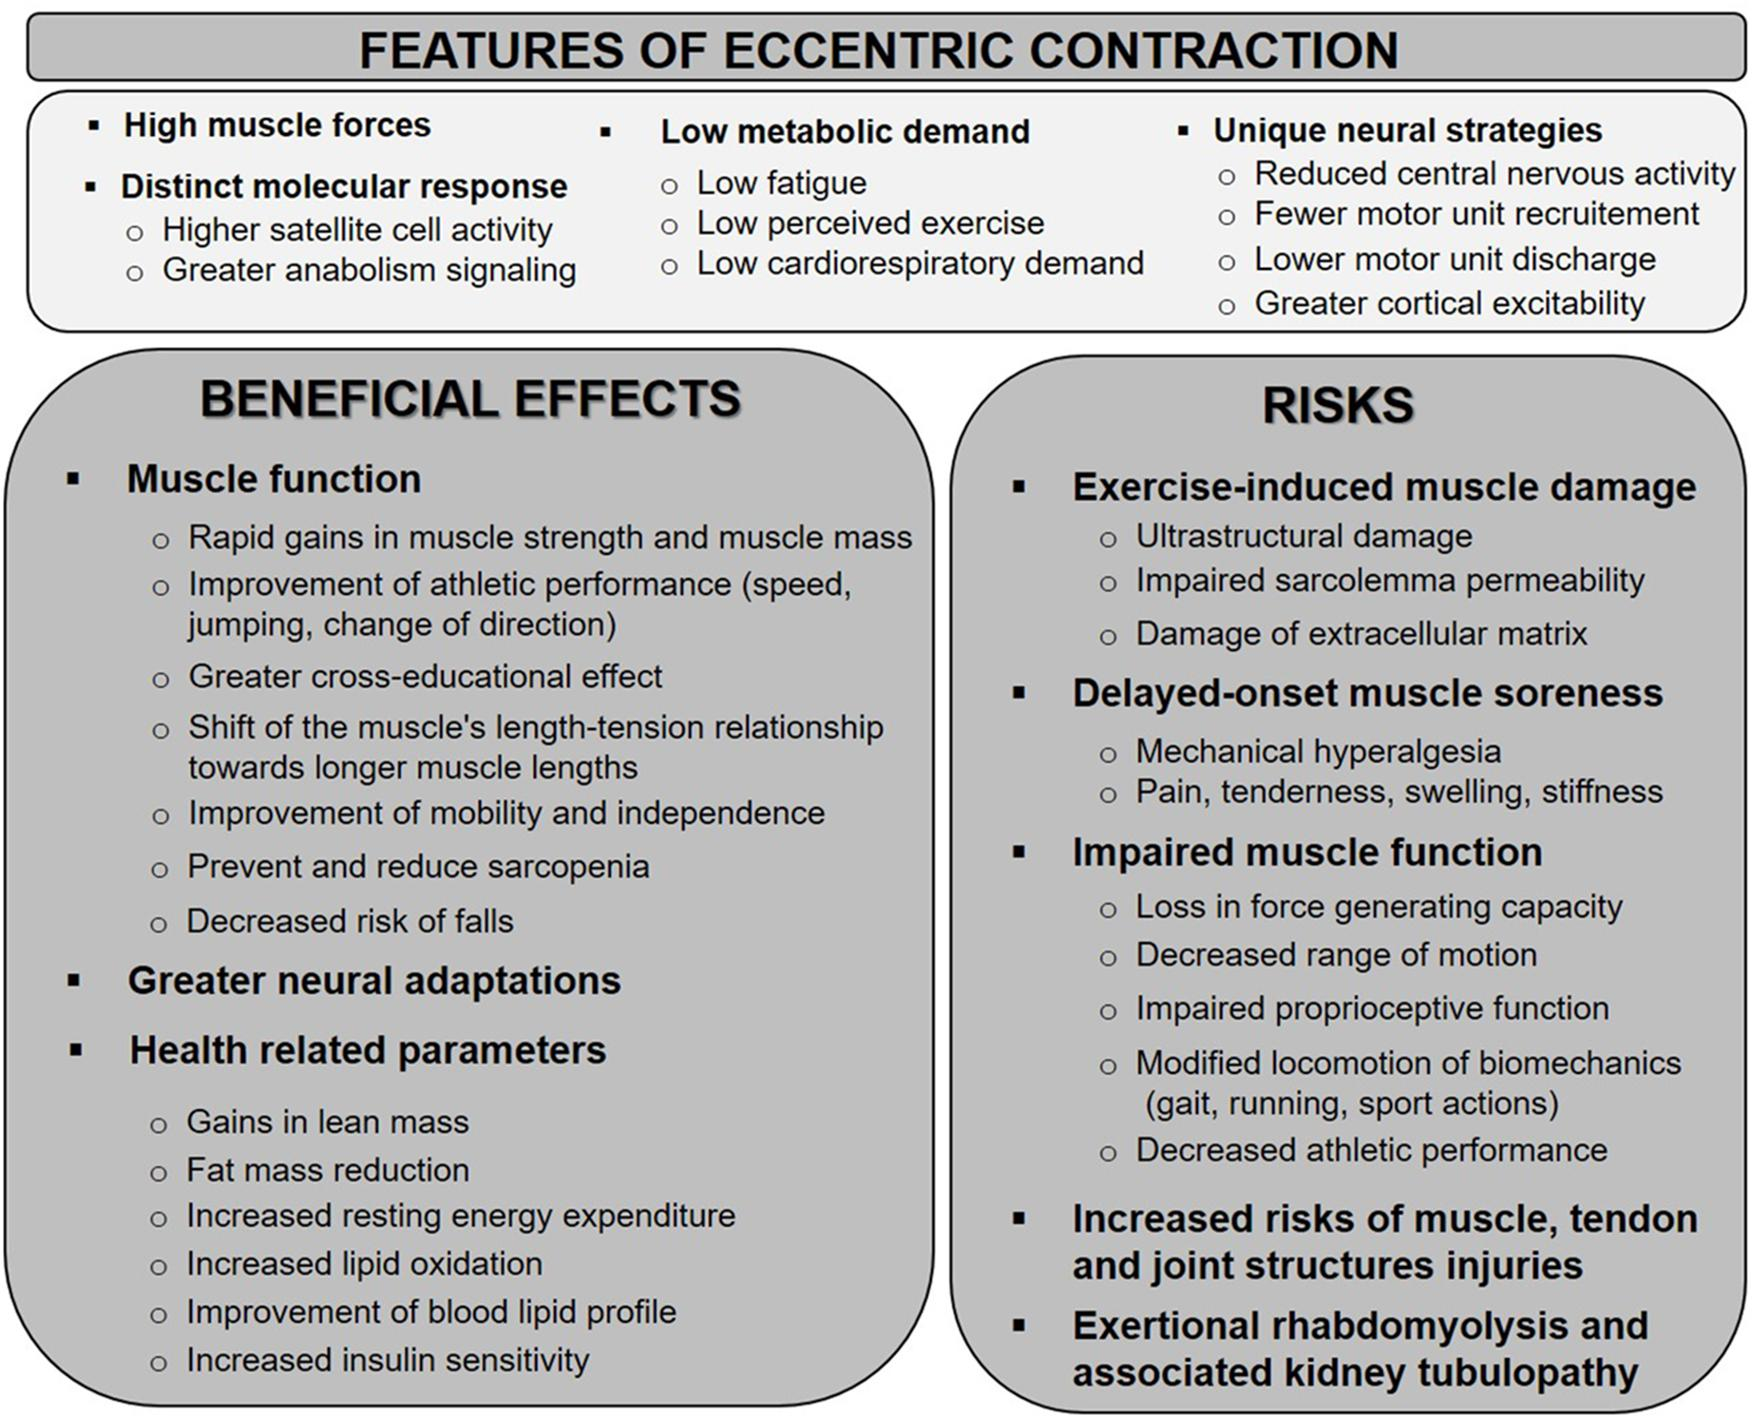 Frontiers | Eccentric Muscle Contractions: Risks and Benefits | Physiology